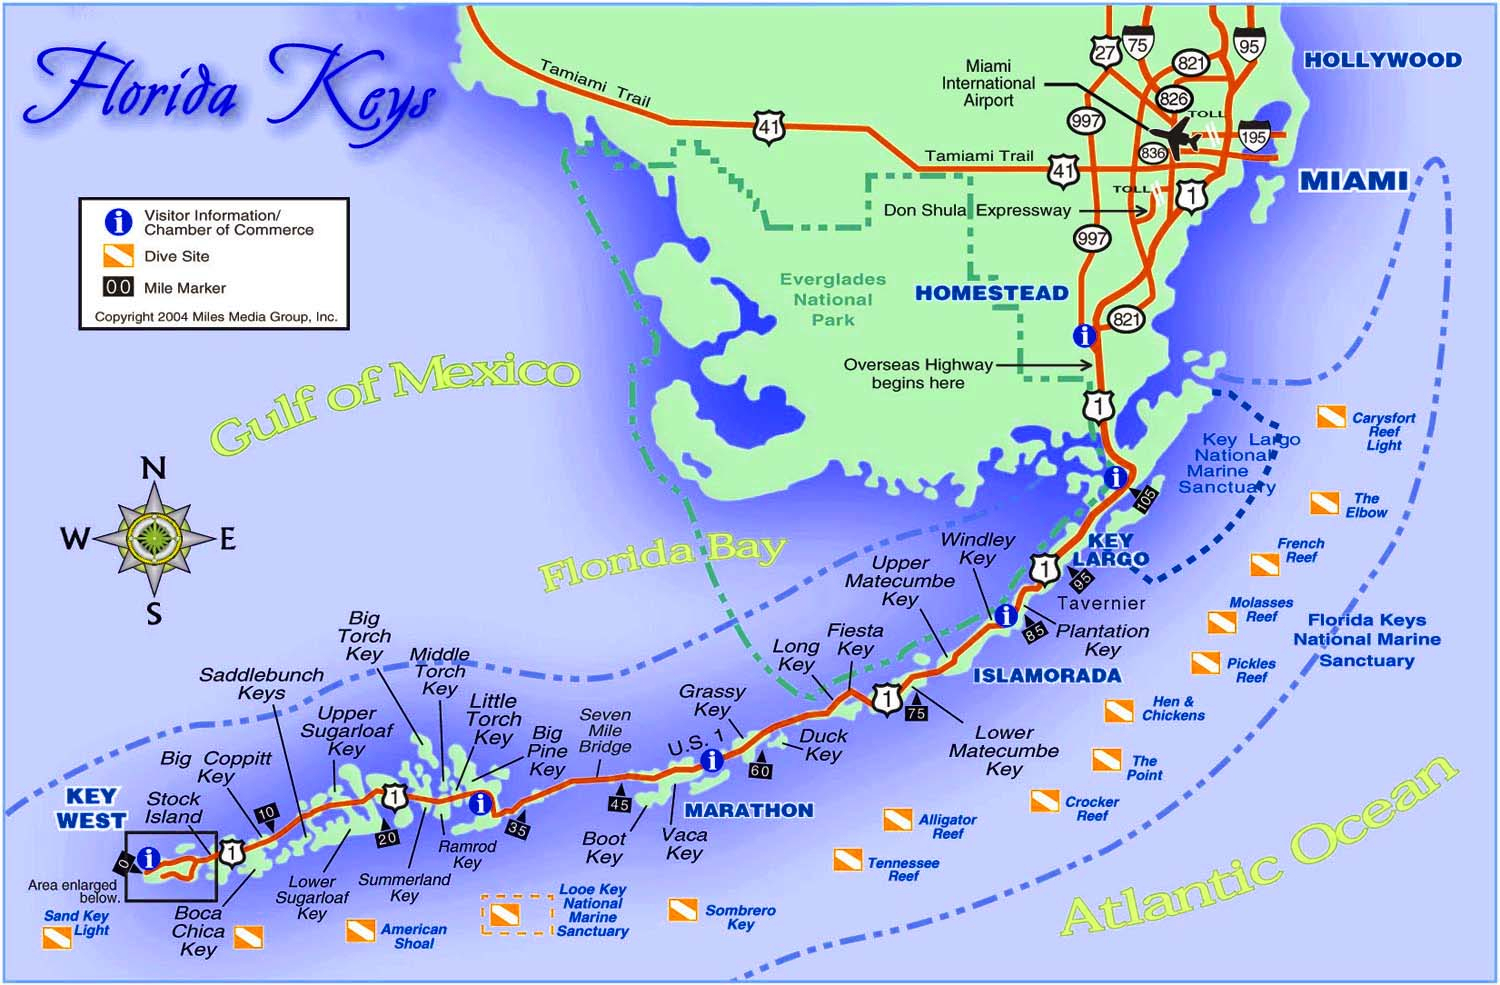 Best Florida Keys Beaches Map And Information - Florida Keys - Detailed Map Of Florida Keys